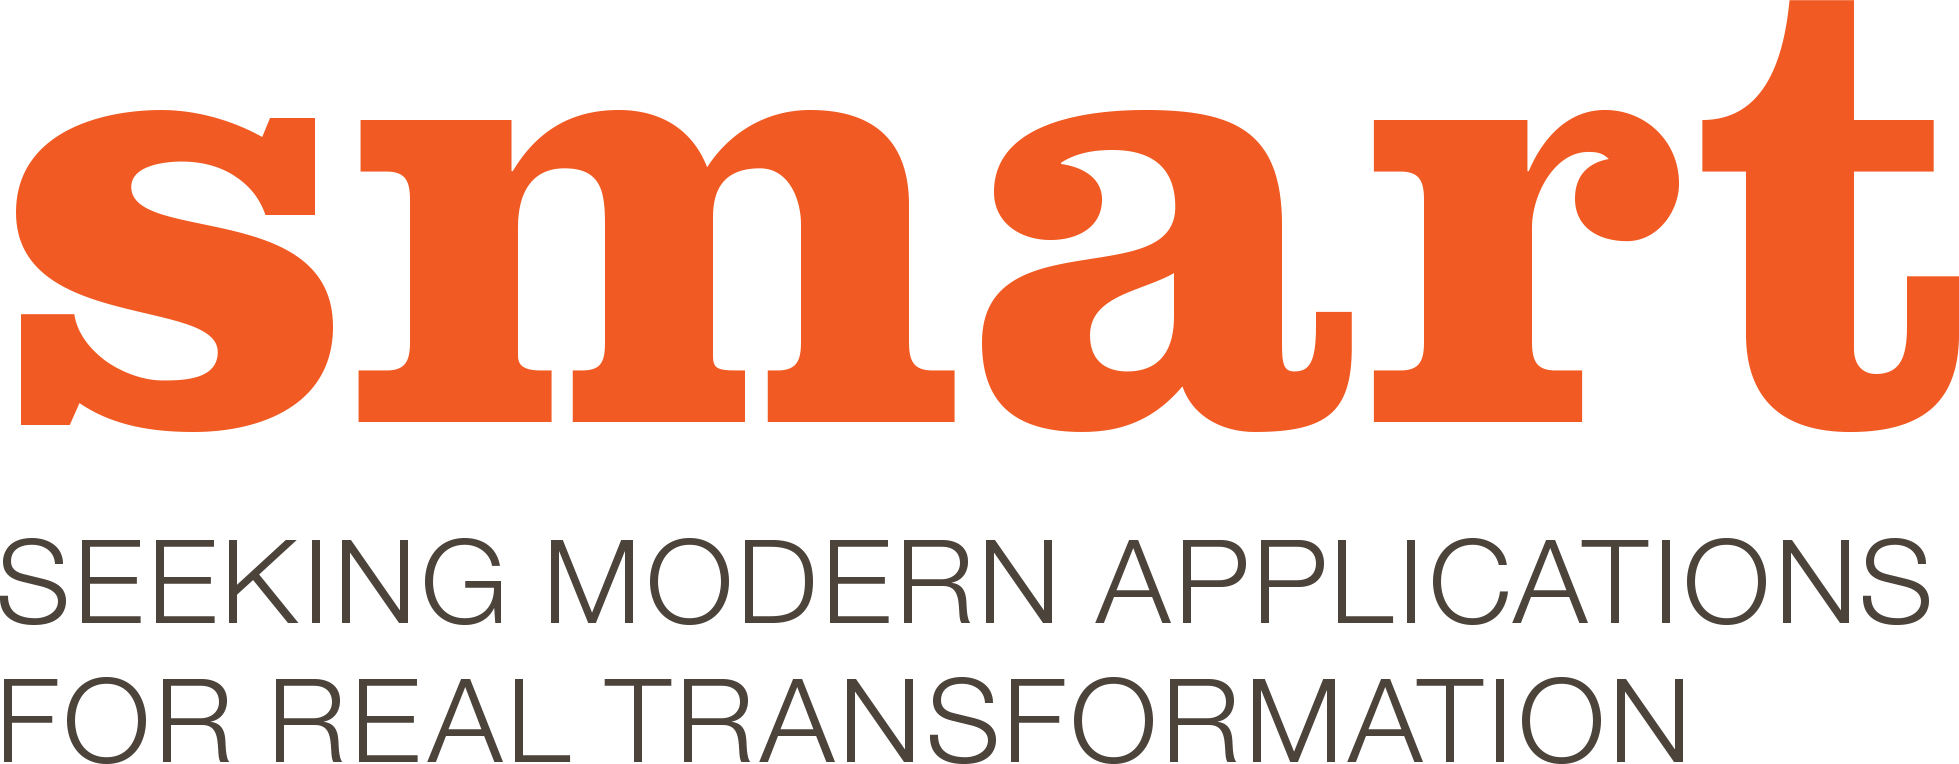 SEEKING MODERN APPLICATIONS FOR REAL TRANSFORMATION (SMART)